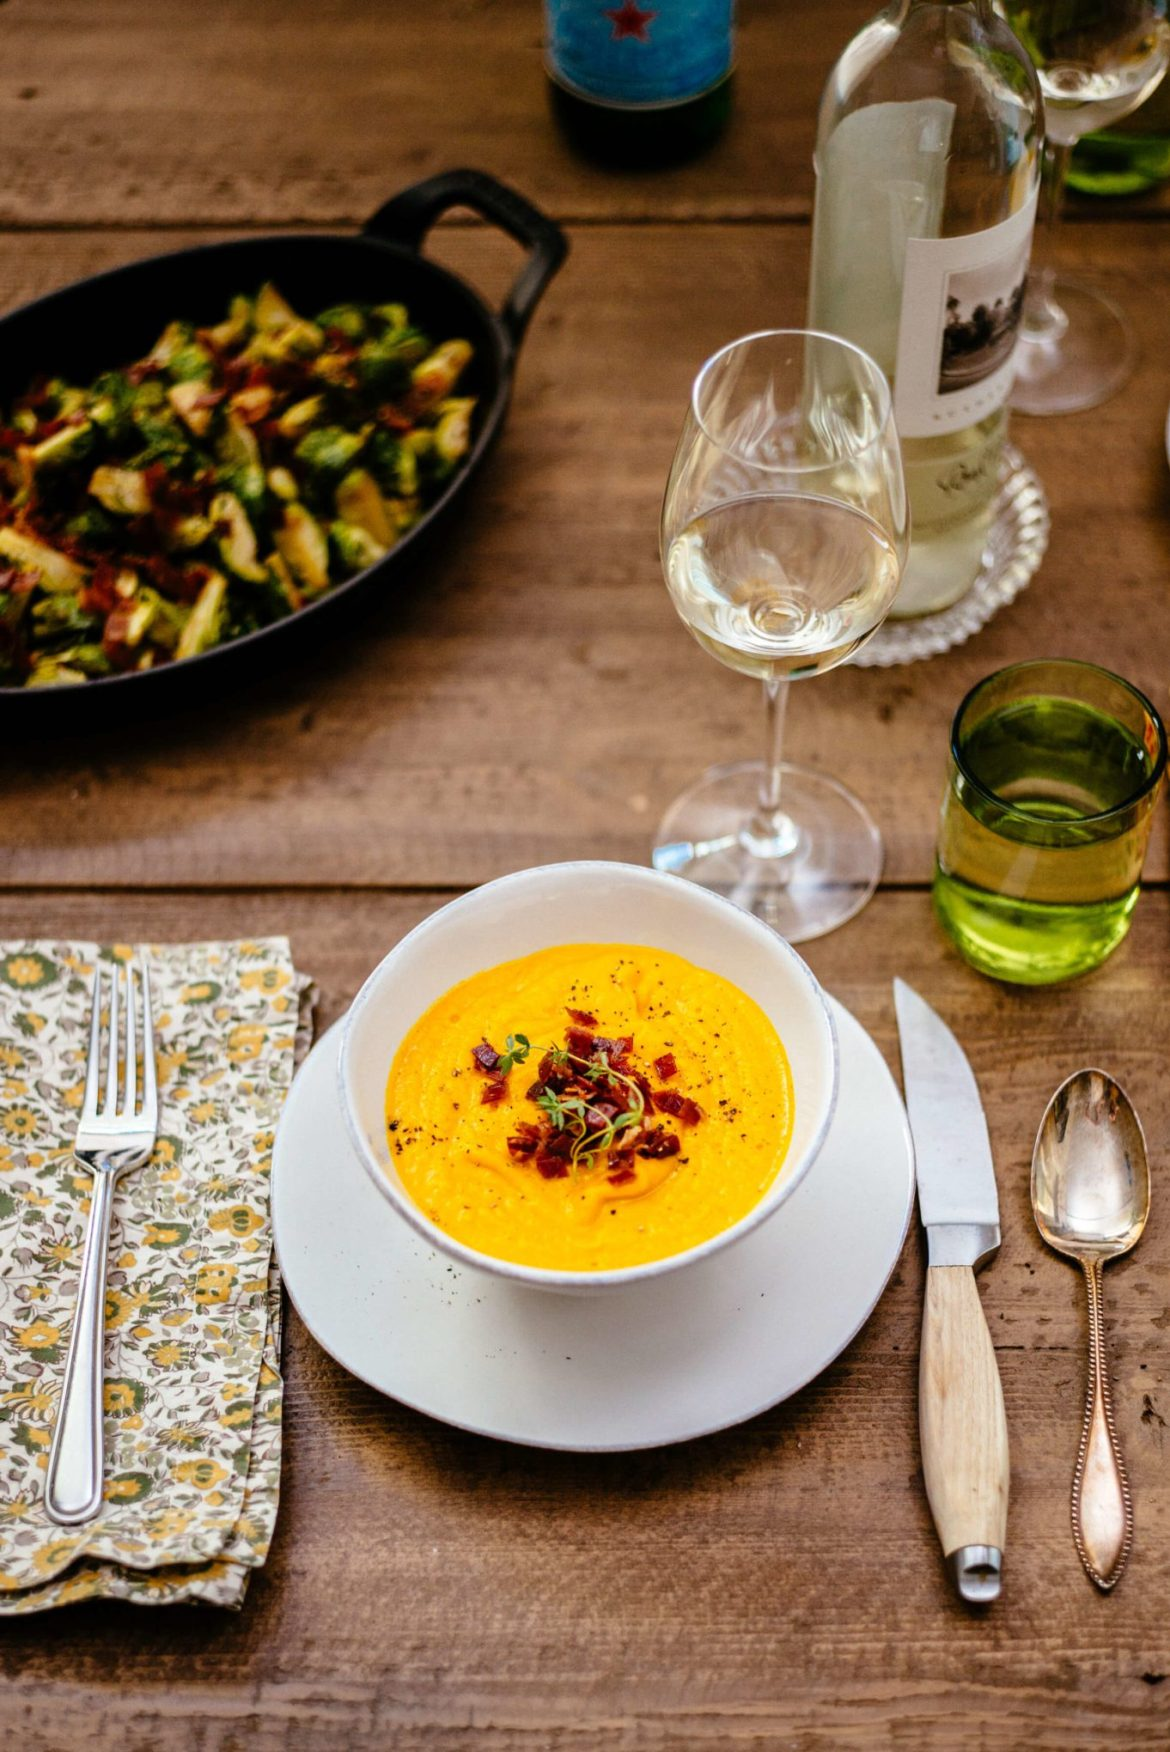 The Taste Edit serves Roasted Kabocha Squash Soup with Crispy Prosciutto paired with round pond sauvignon blanc at thanksgiving and spic roasted brussels sprouts